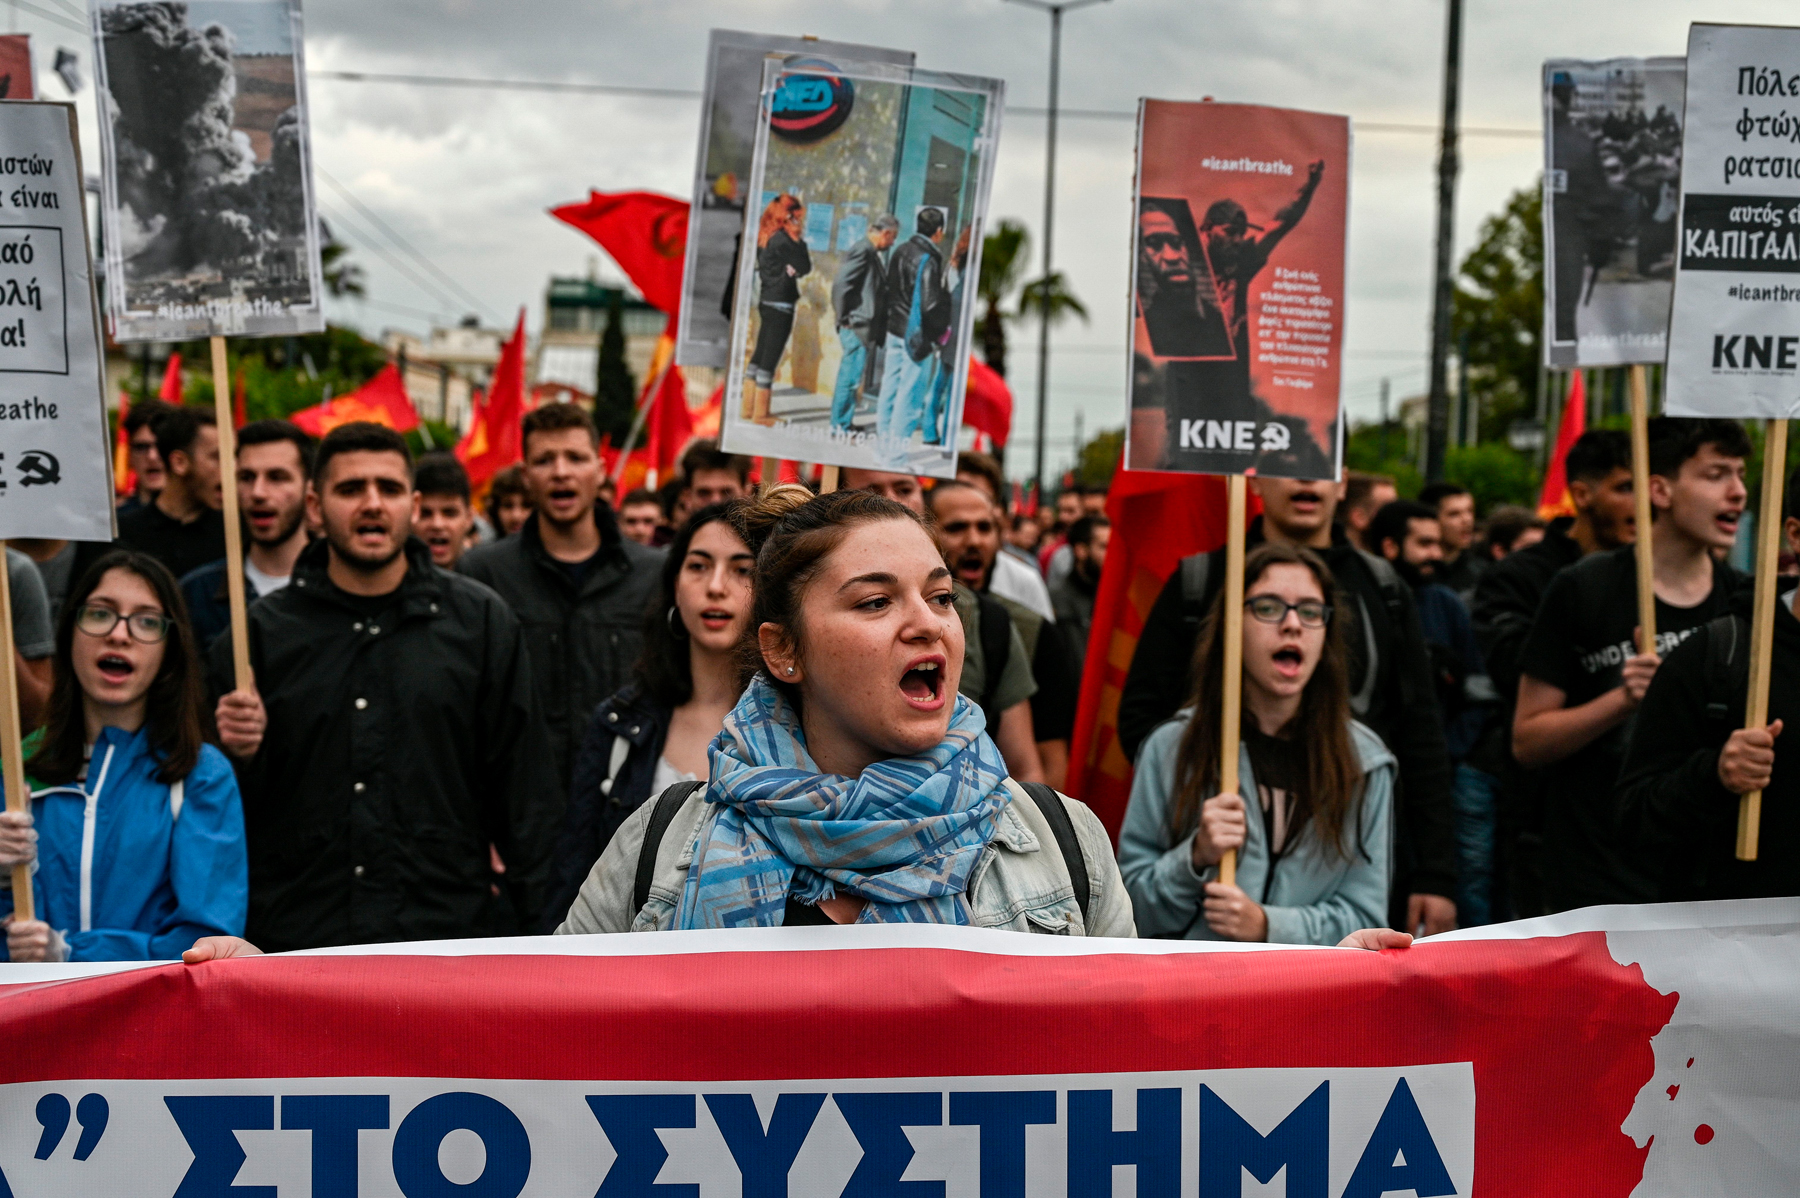 Youth members of the greek Comunist party protest next to the US embassy in Athens over the police killing of George Floyd in the USA, on June 1, 2020. - The United States has erupted into days and nights of protests, violence, and looting, following the death of George Floyd after he was detained and held down by a knee to his neck, dying shortly after. (Photo by ARIS MESSINIS / AFP) (Photo by ARIS MESSINIS/AFP via Getty Images)